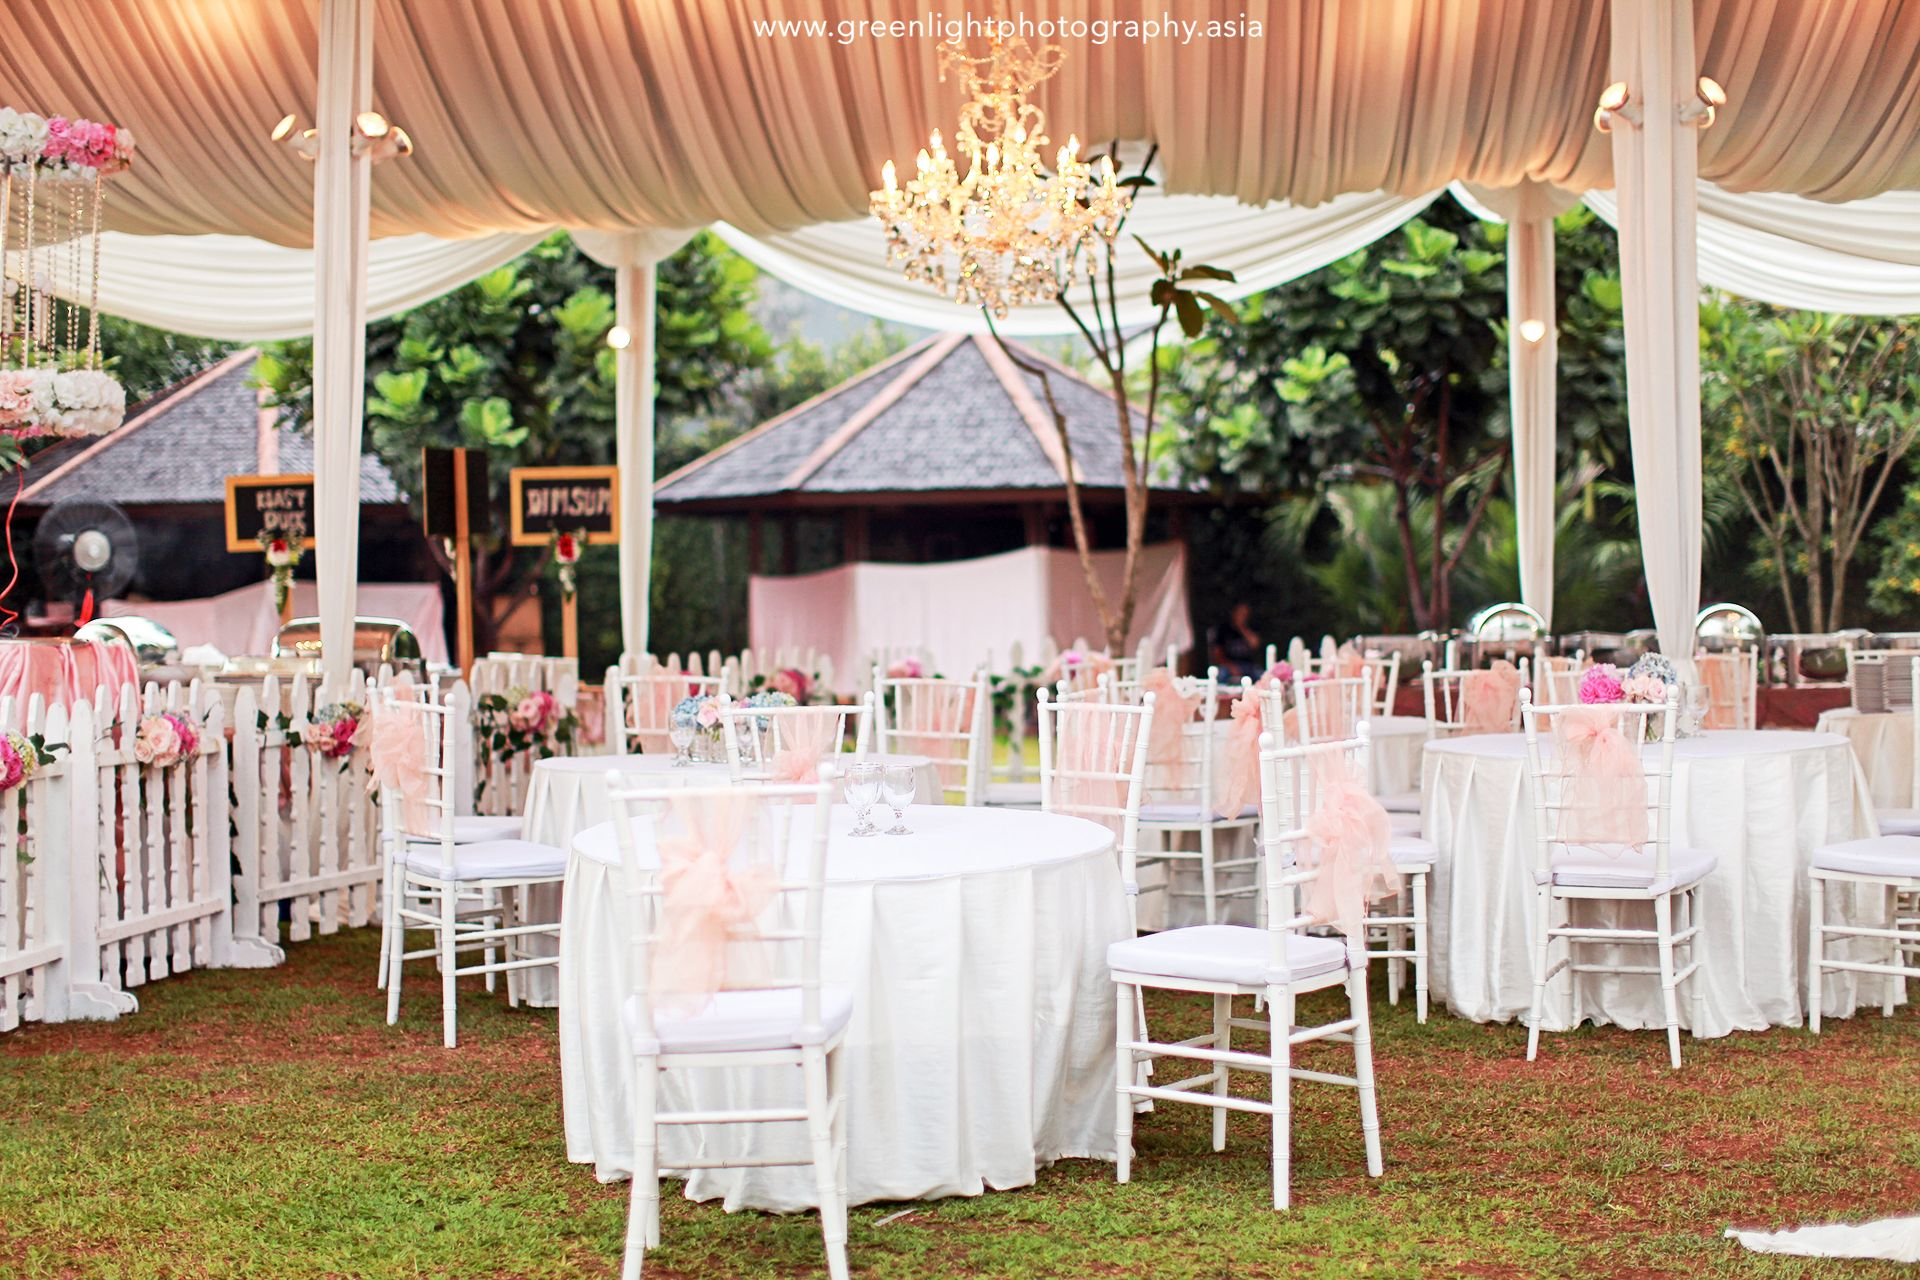 Secret garden wedding at pondok indah lestari outdoor wedding secret garden wedding at pondok indah lestari outdoor wedding pondok indah lestari thebridedept junglespirit Image collections